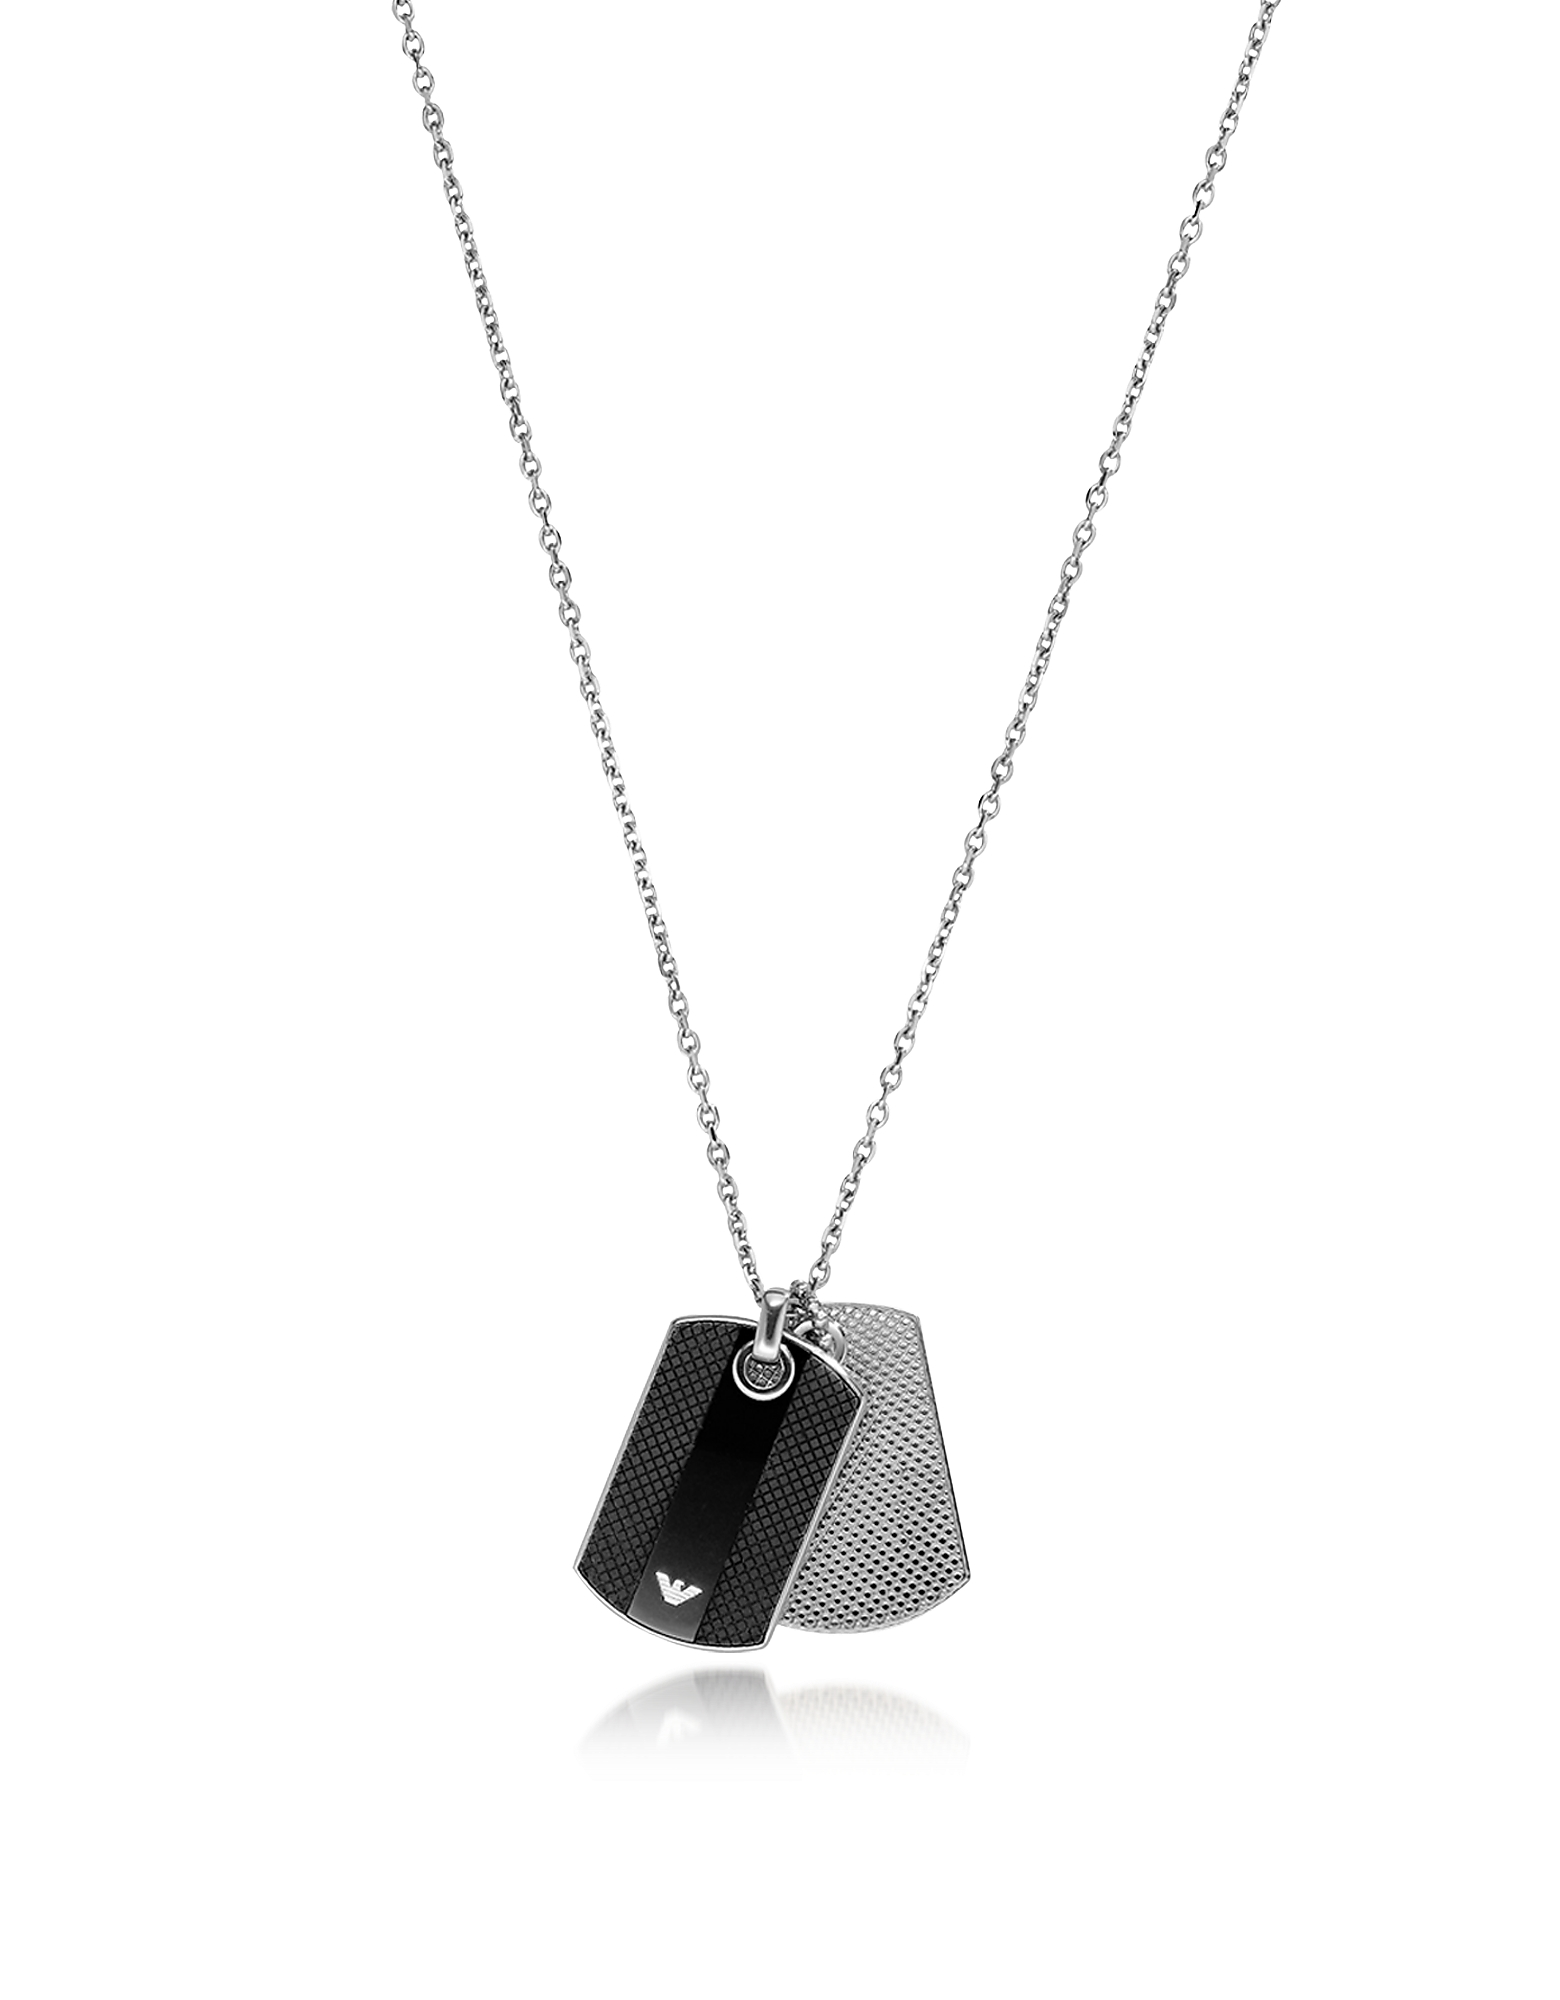 Emporio Armani Men's Necklaces, Iconic Black and Silver Stainless Steel Charm Men's Necklace